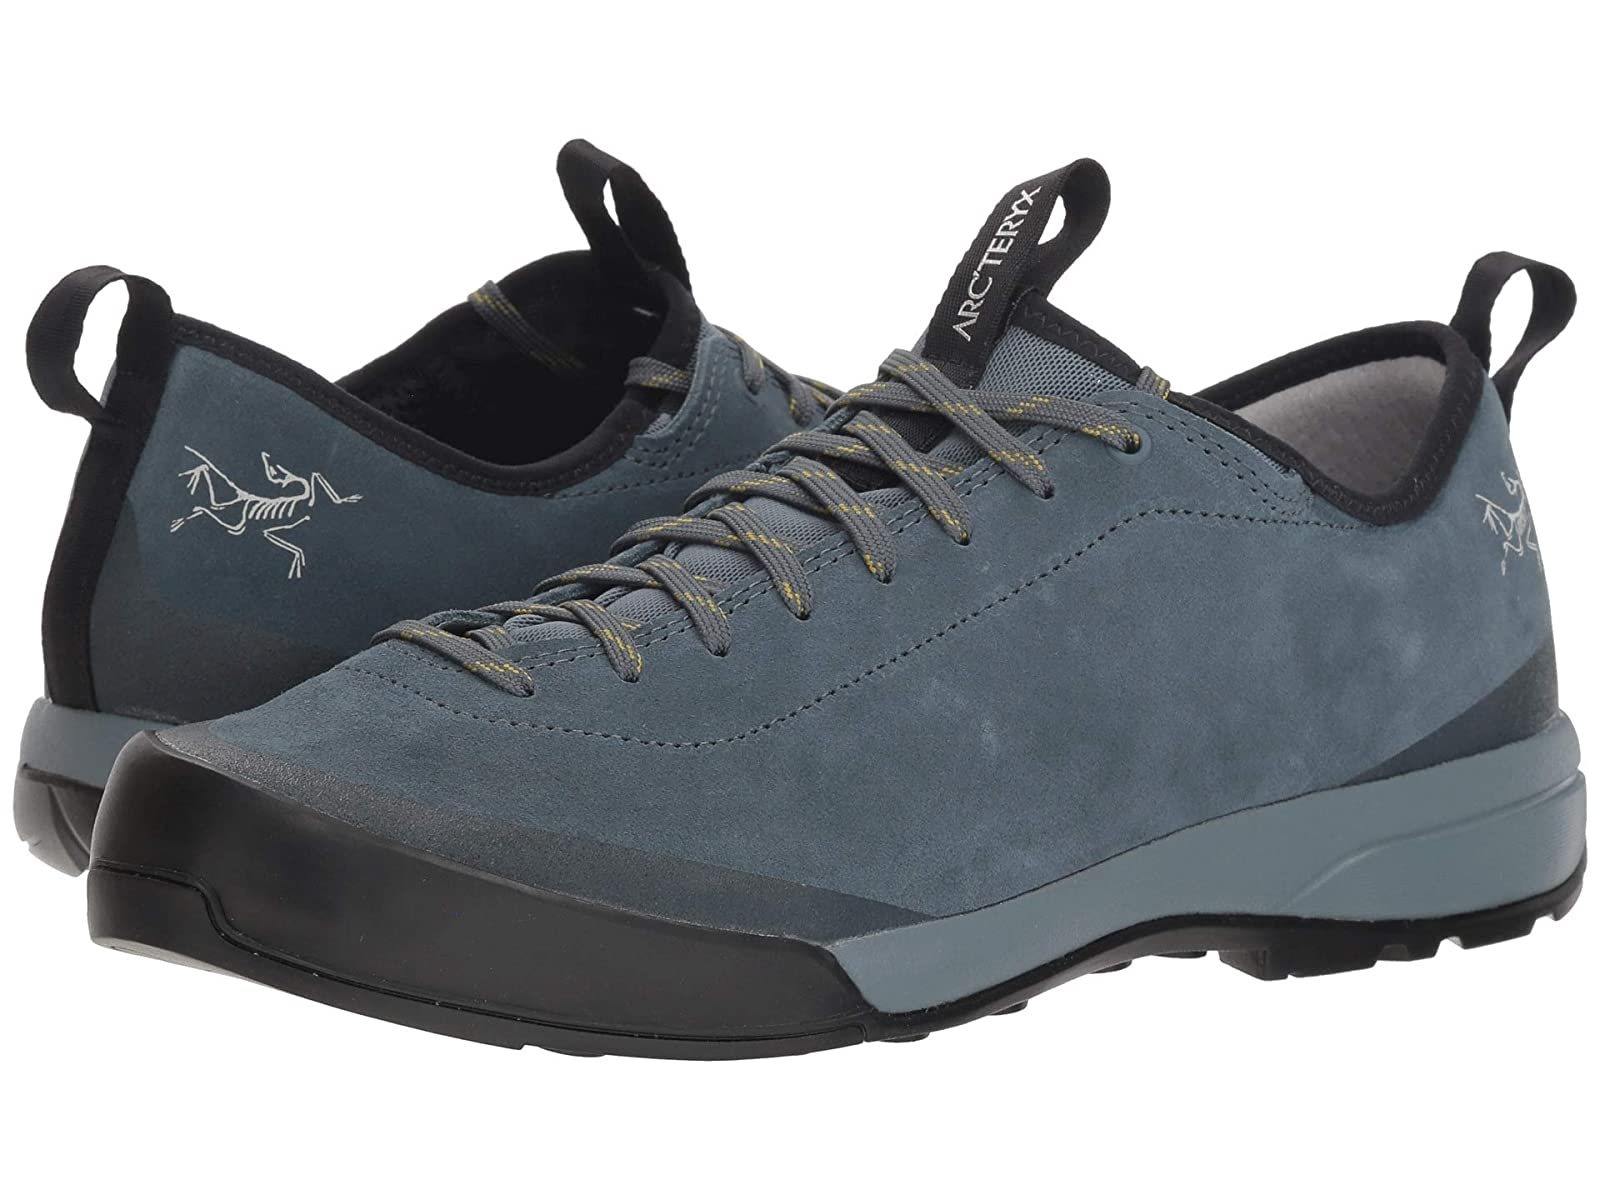 Arc'teryx Acrux SL LeatherAtmospheric grades have affordable shoes